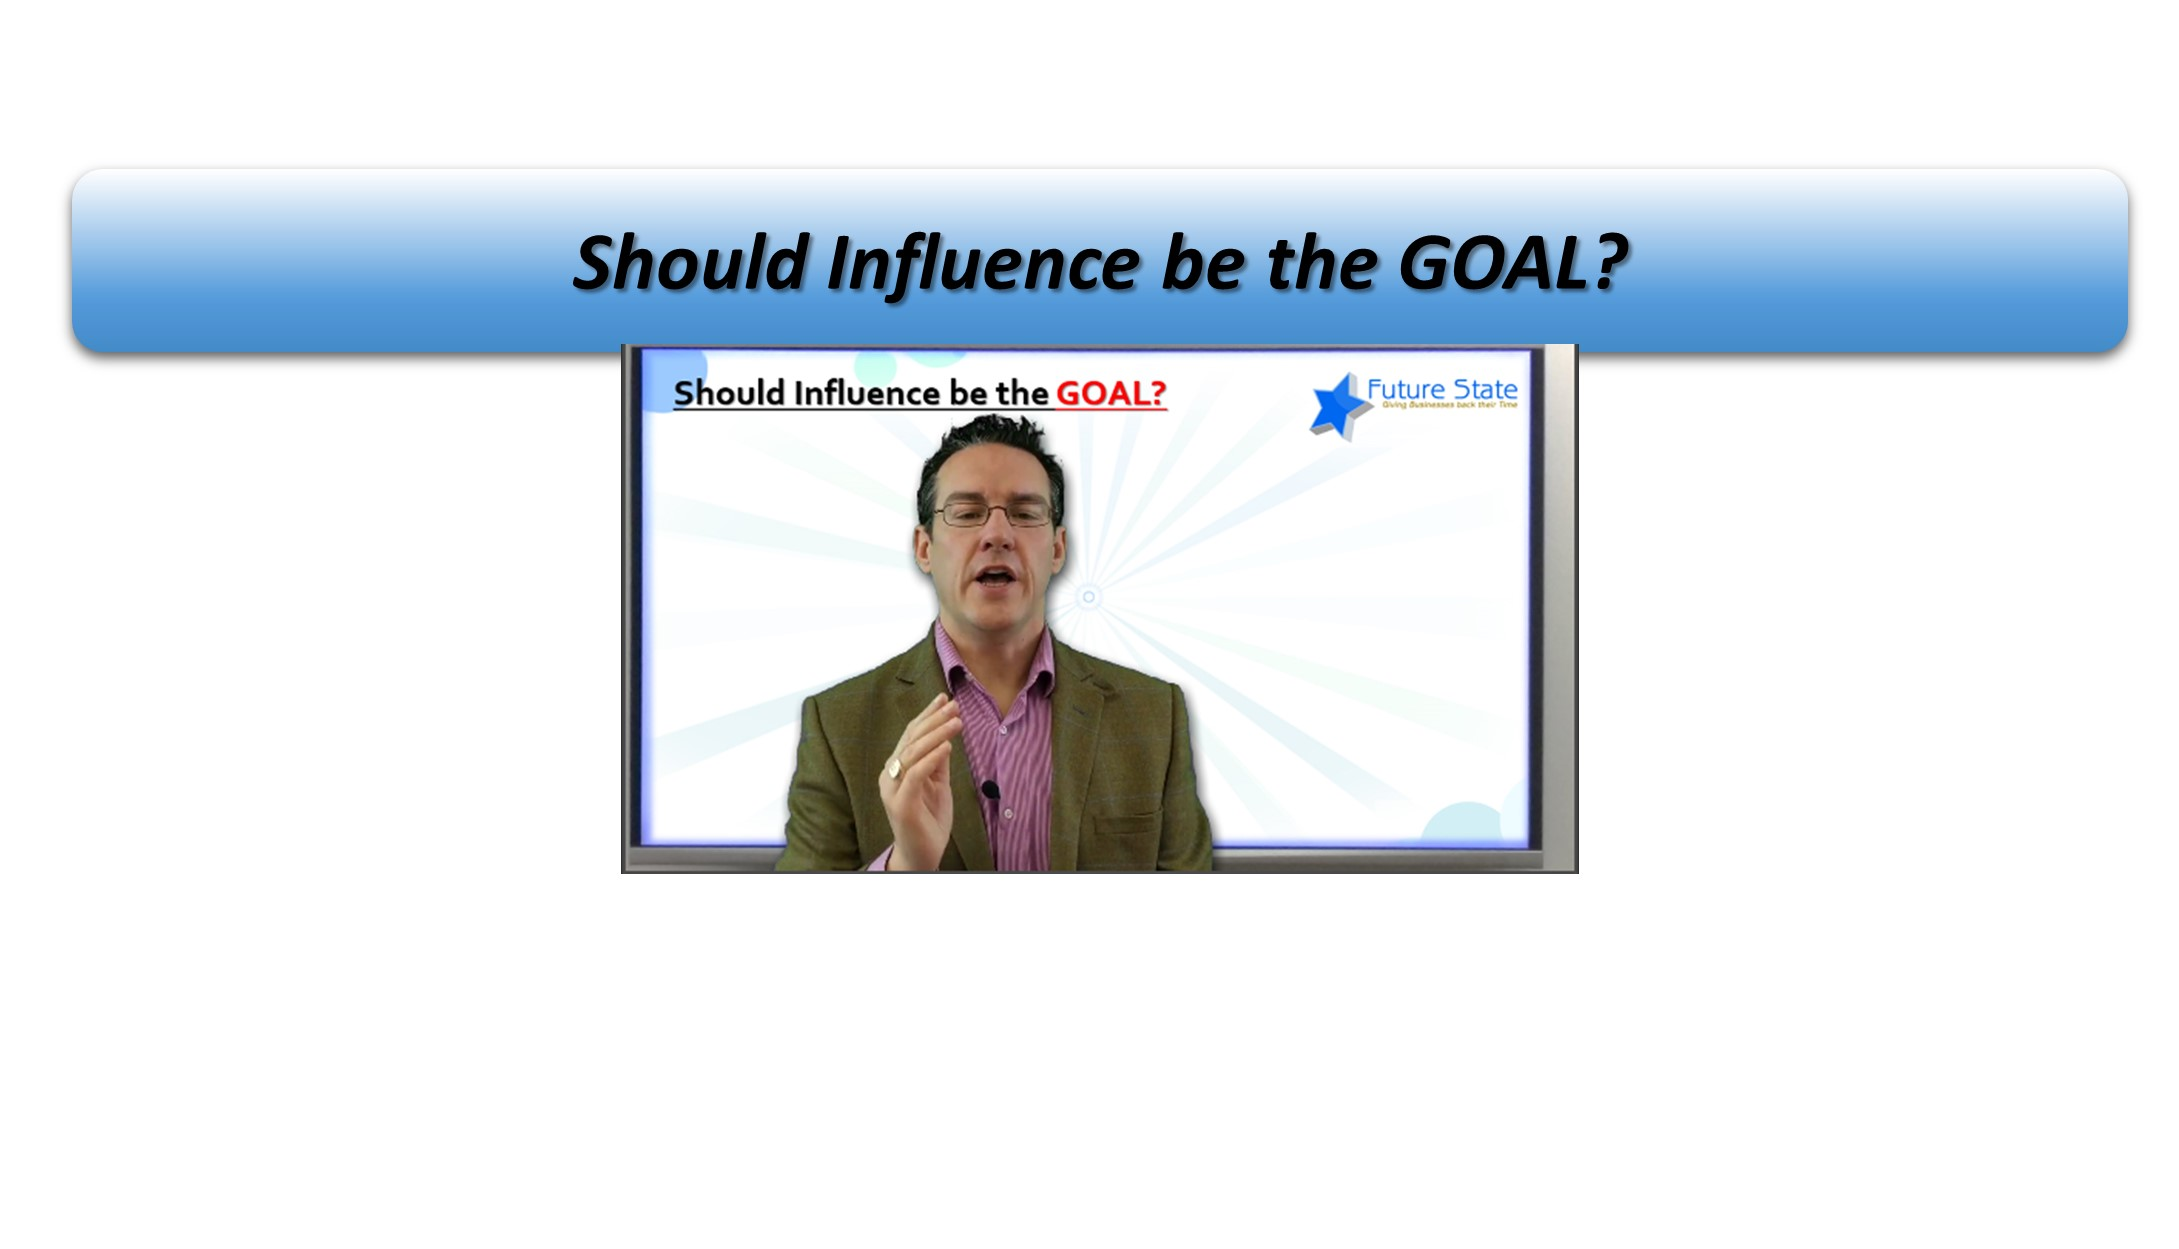 Influence in Business, should it be the Goal?